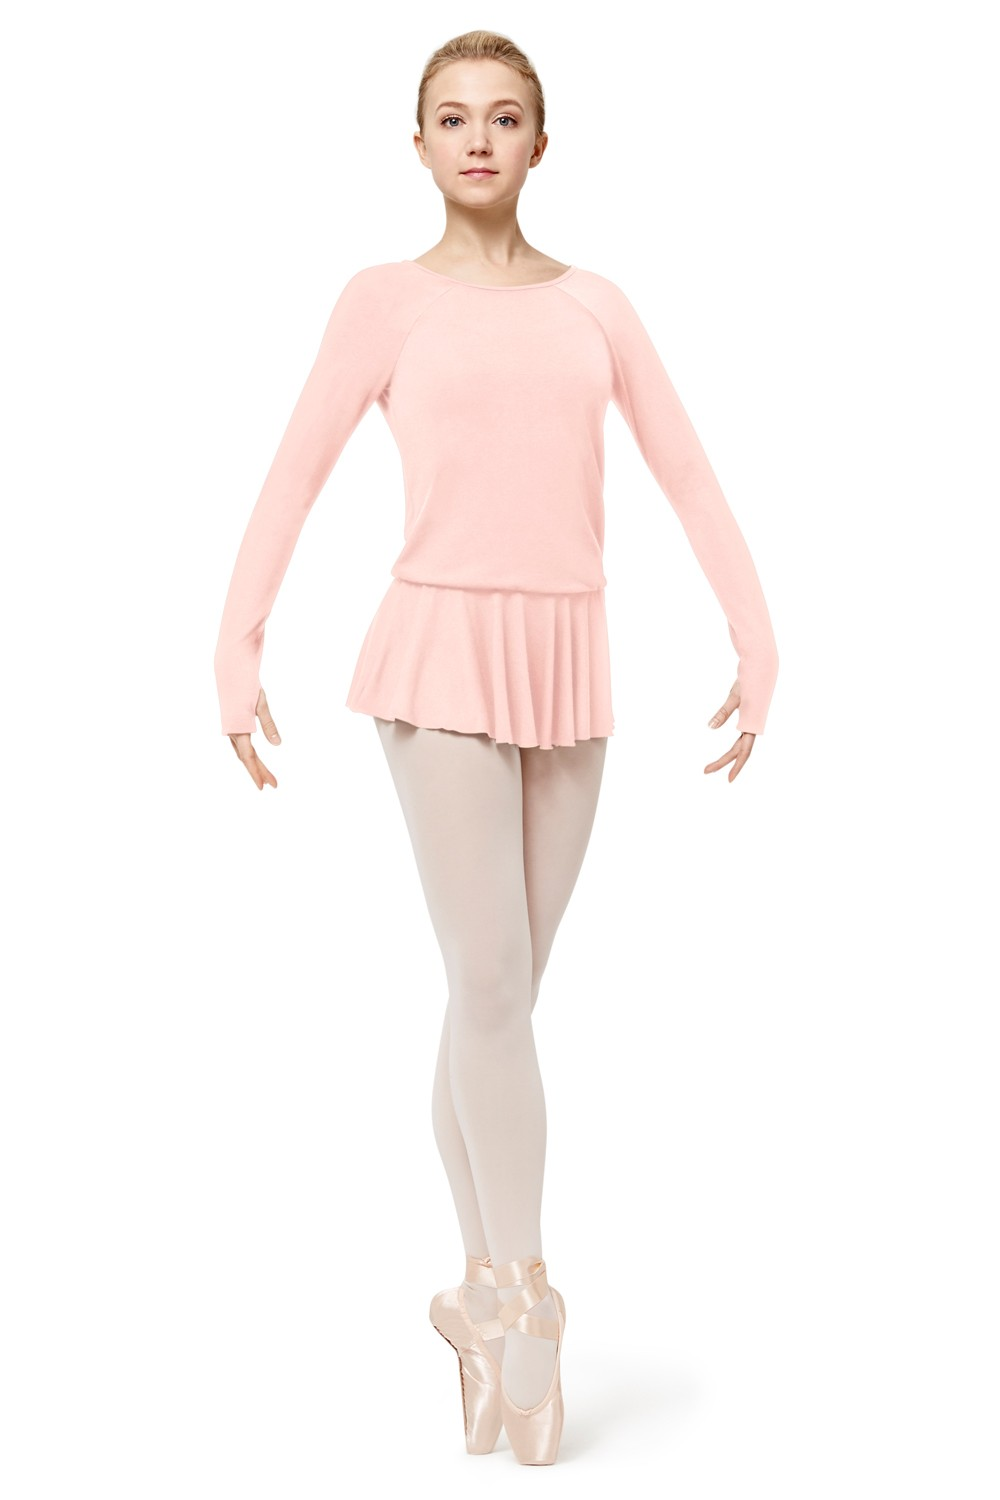 Long Sleeve Dress Women's Dance Leotards